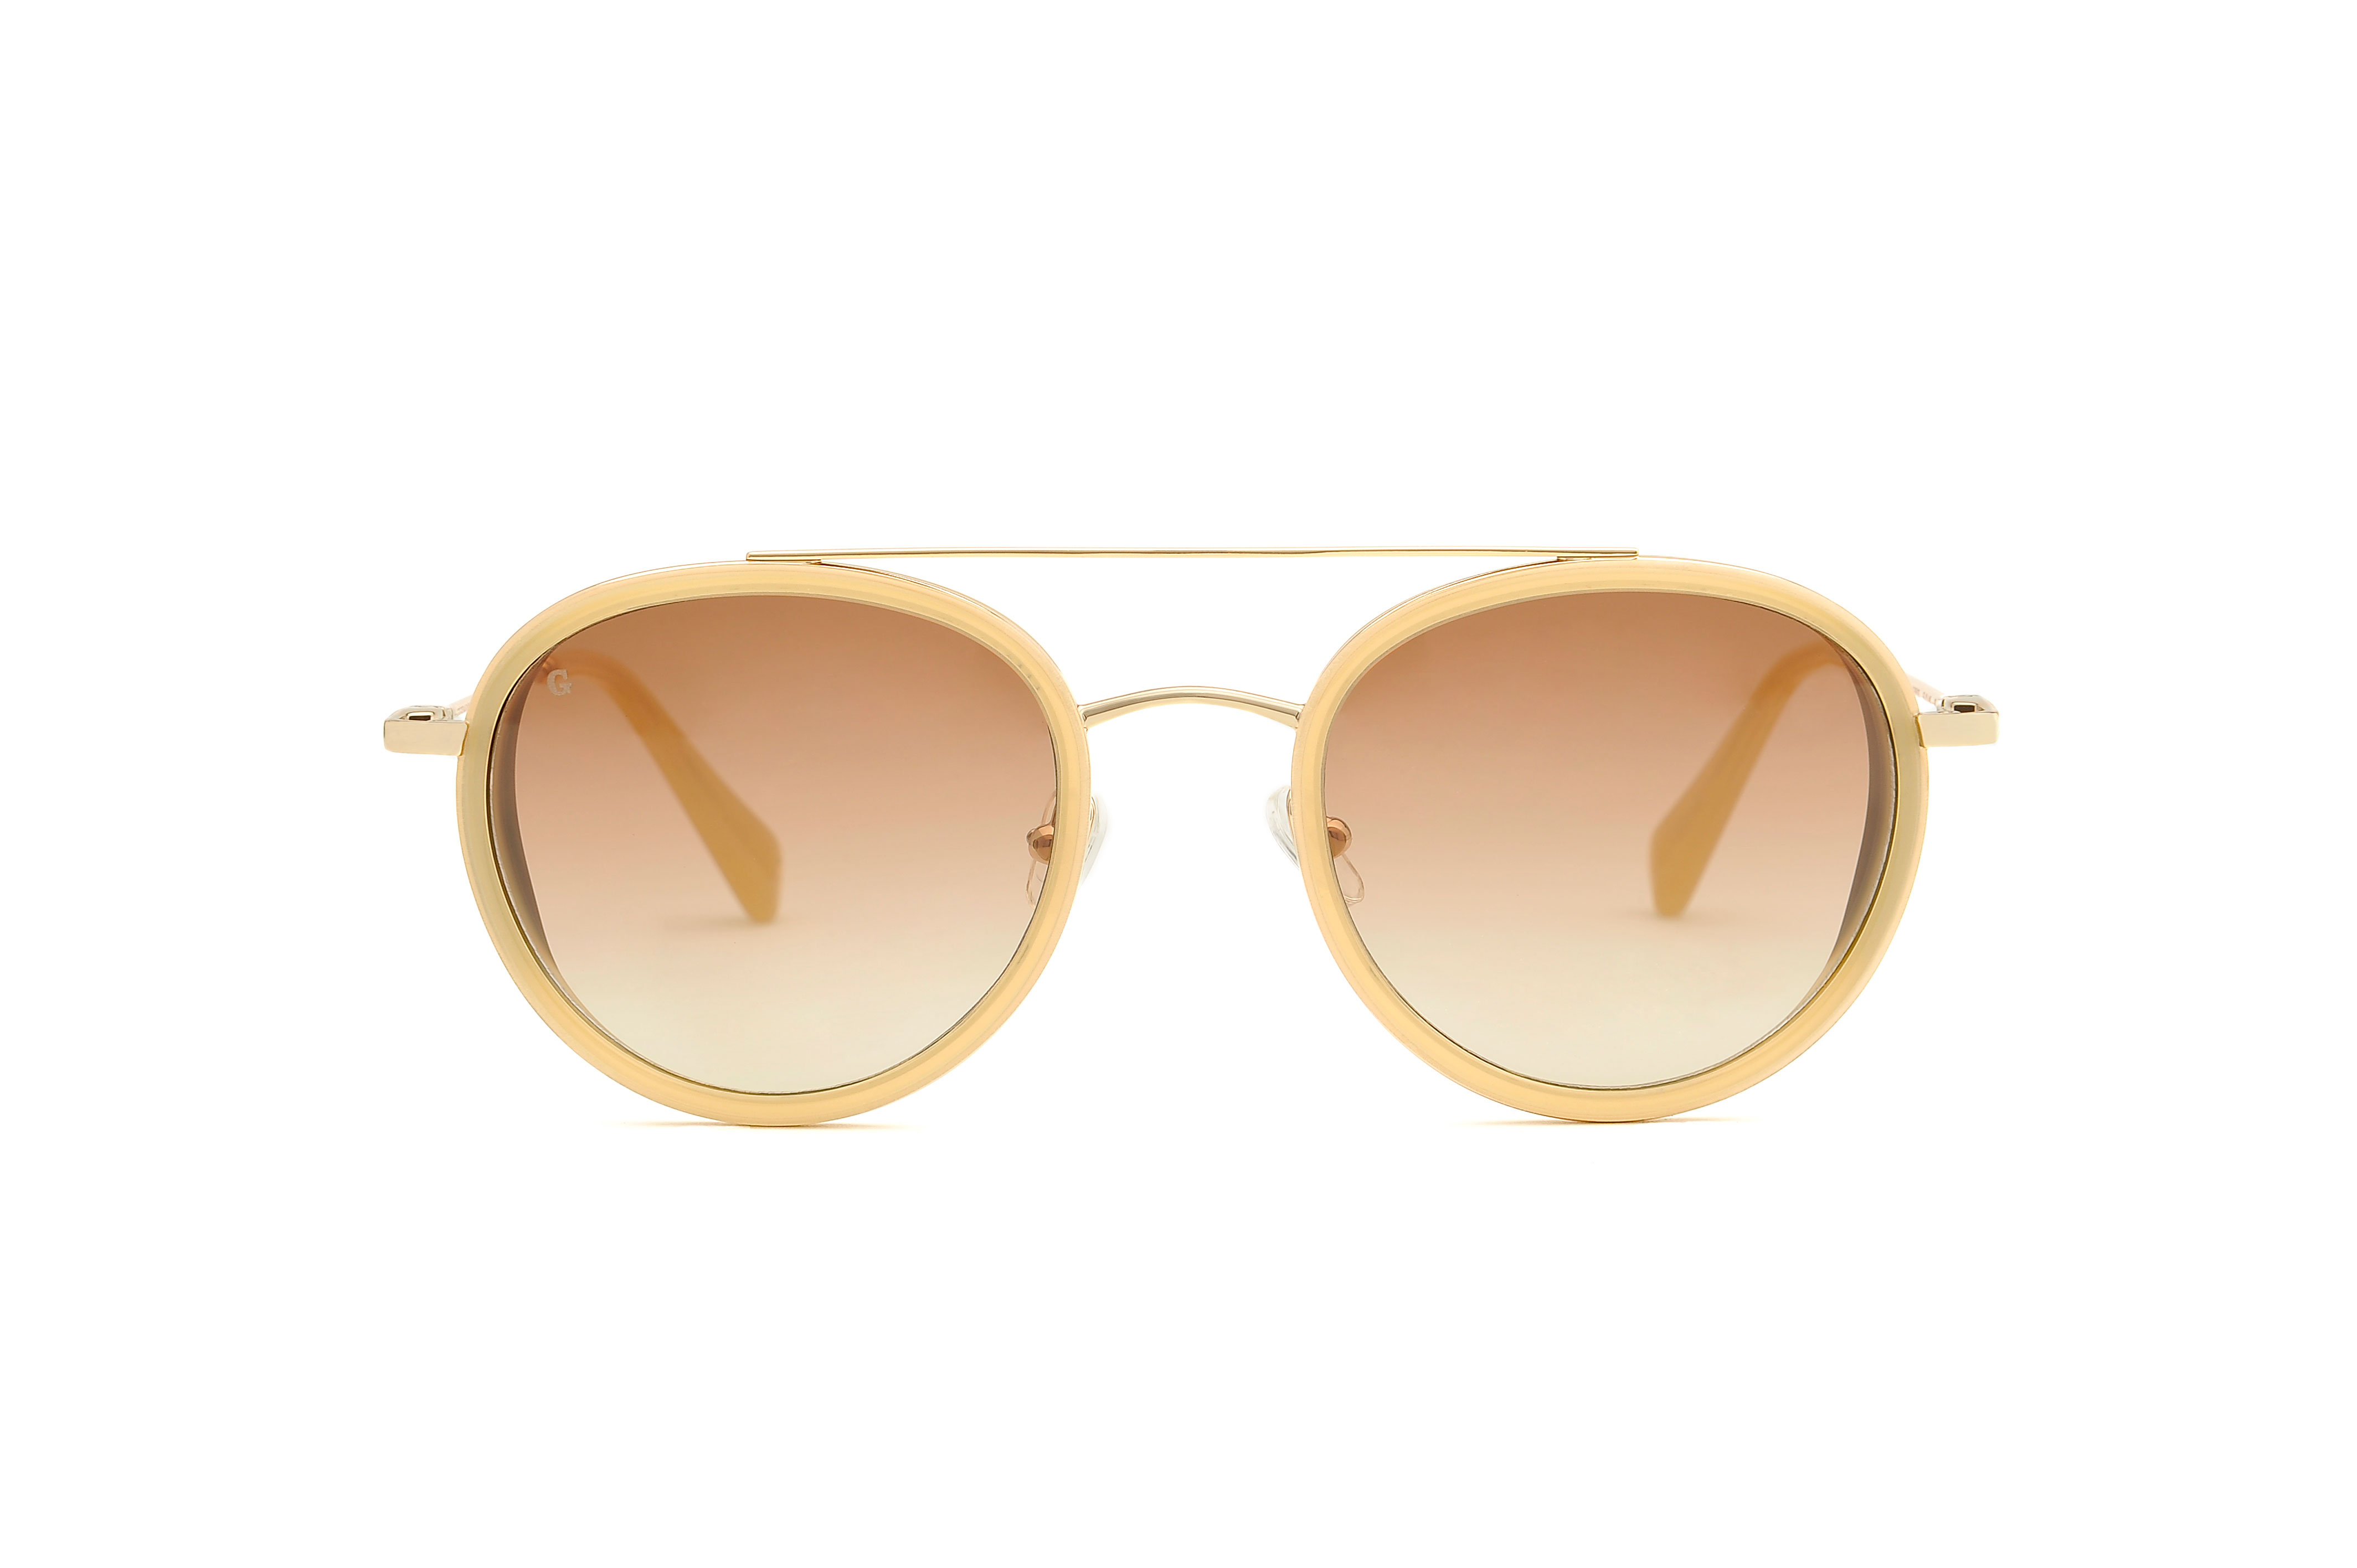 Firenze acetate/metal aviator white sunglasses by GIGI Studios